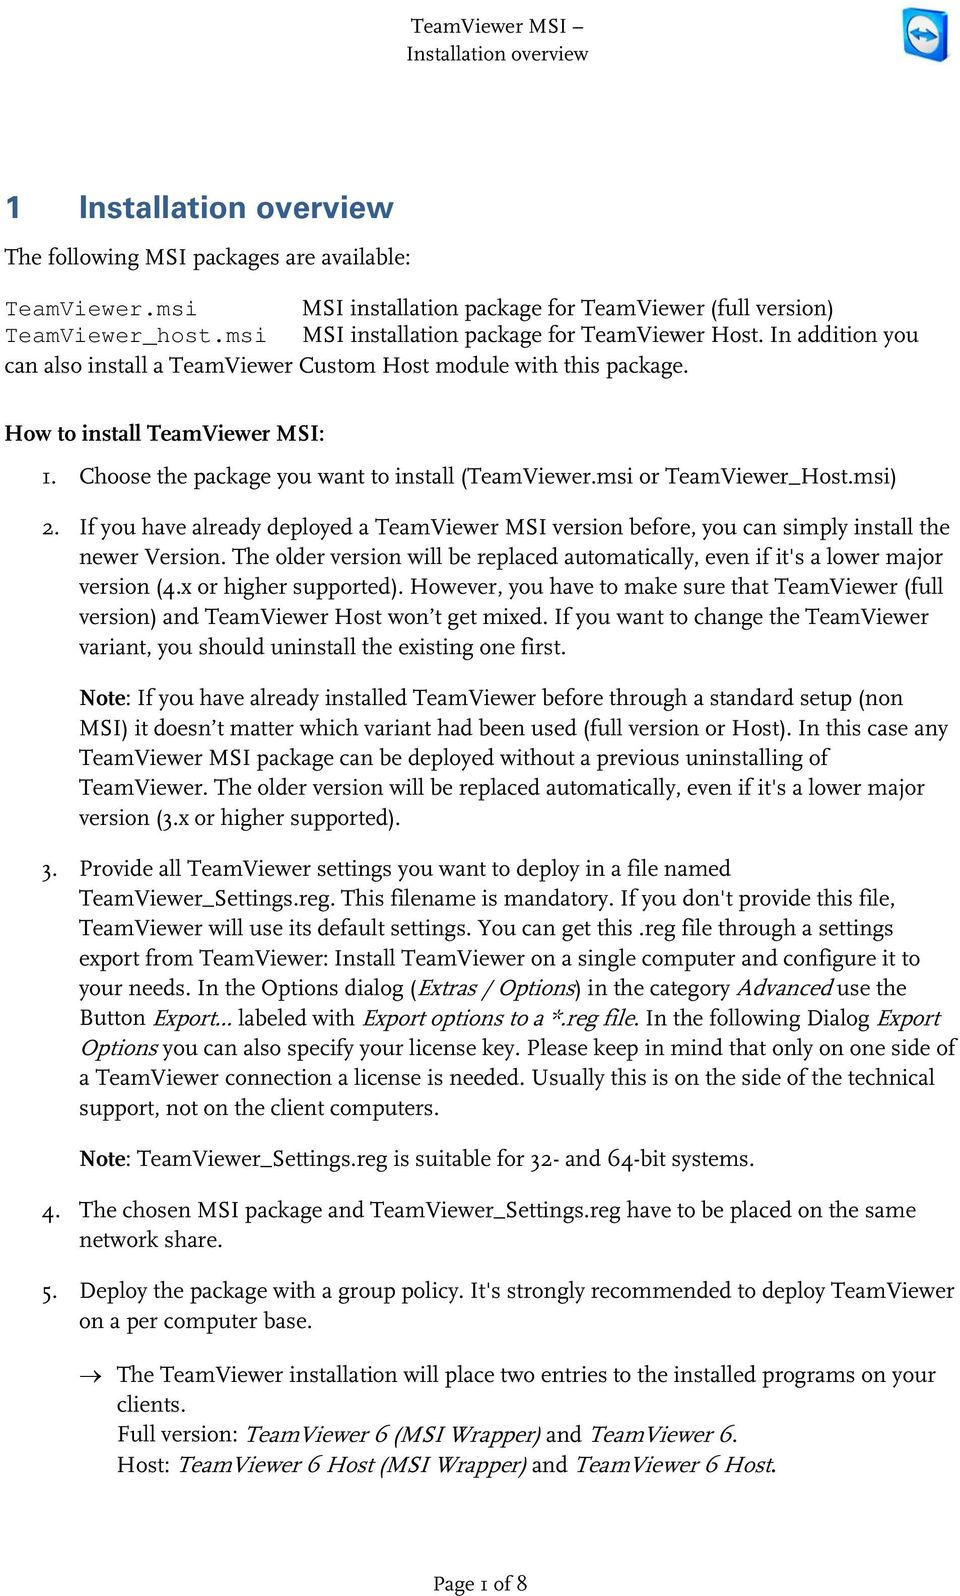 TeamViewer MSI - Installation instructions to deploy